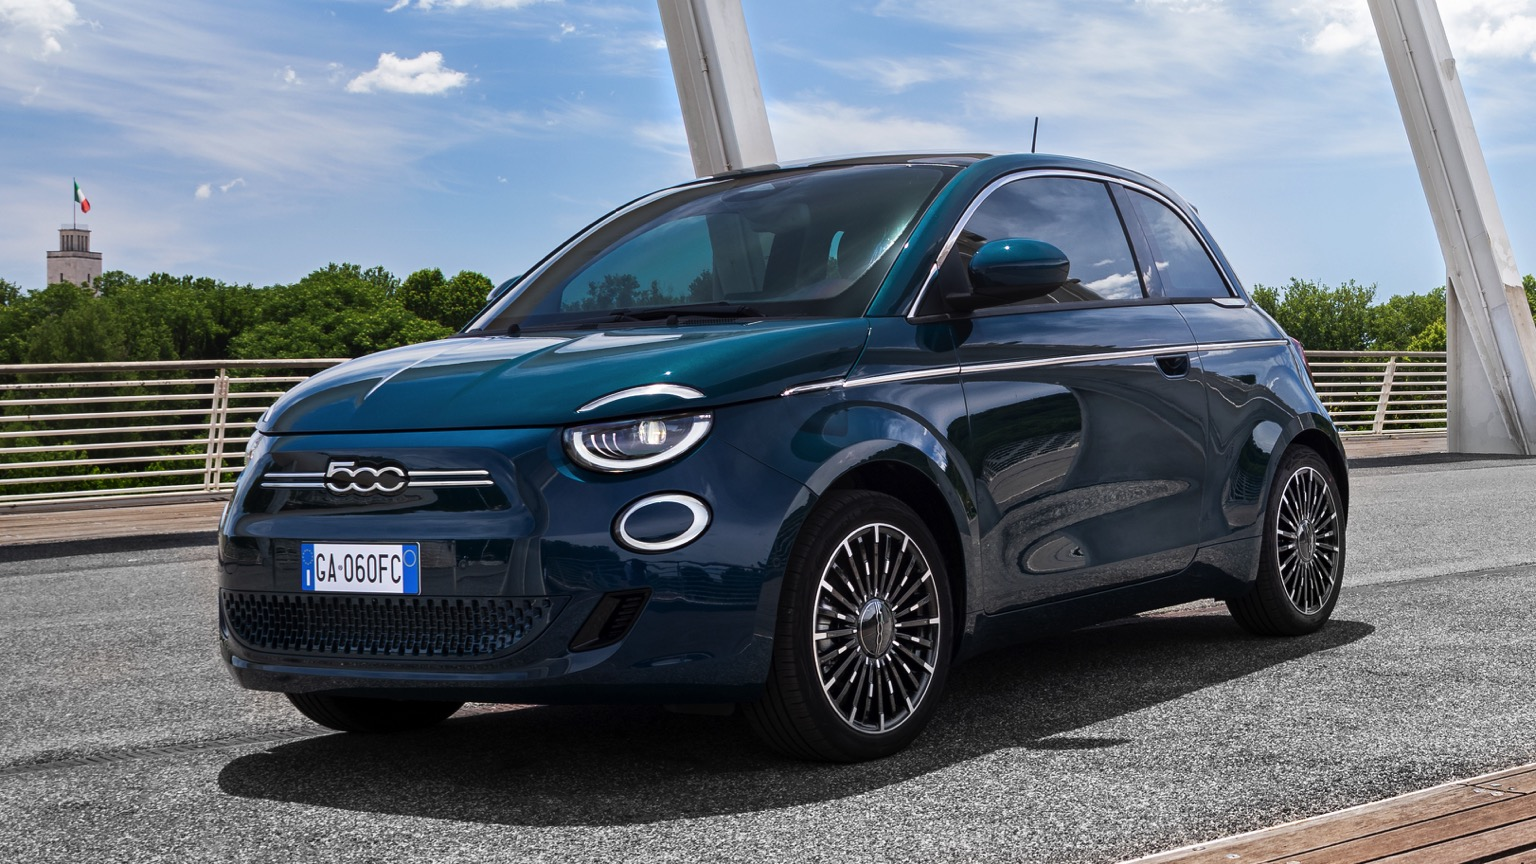 Fiat 500e Hatchback 42 kWh (2020)